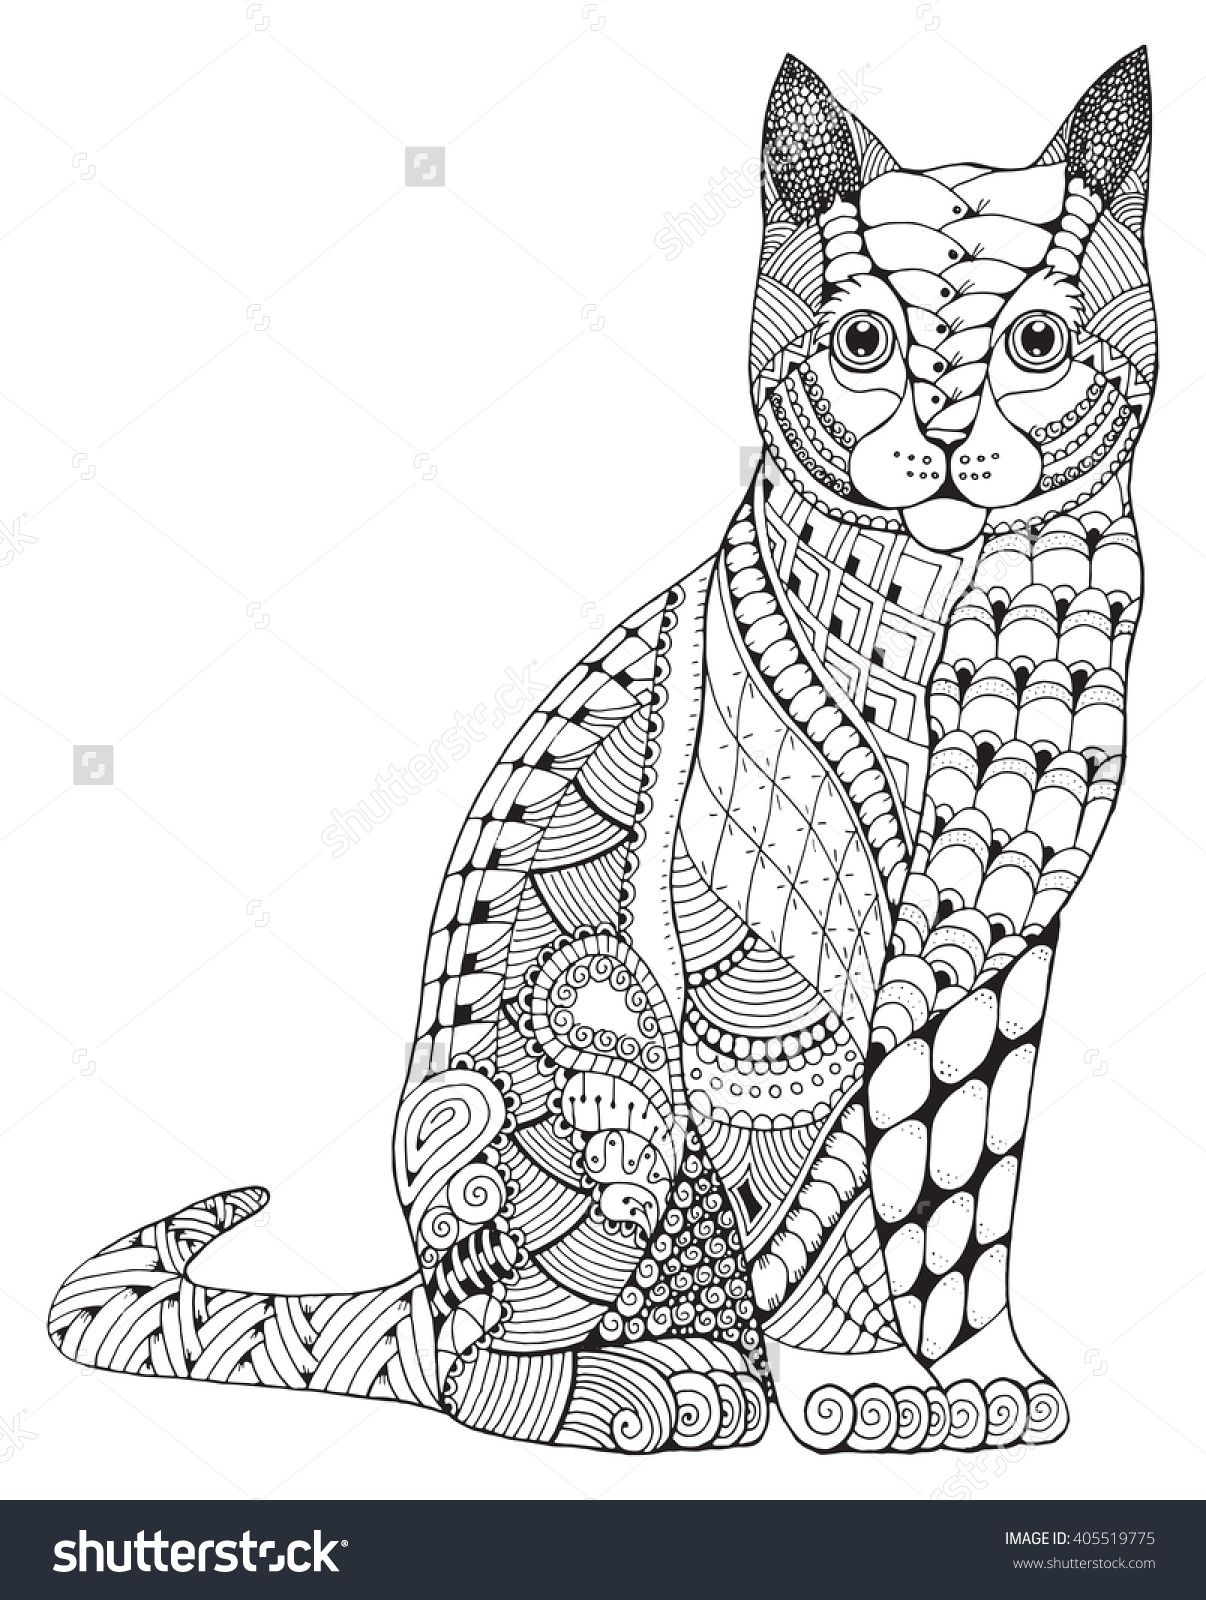 Zen cat coloring page - Zentangle Cat Coloring Page